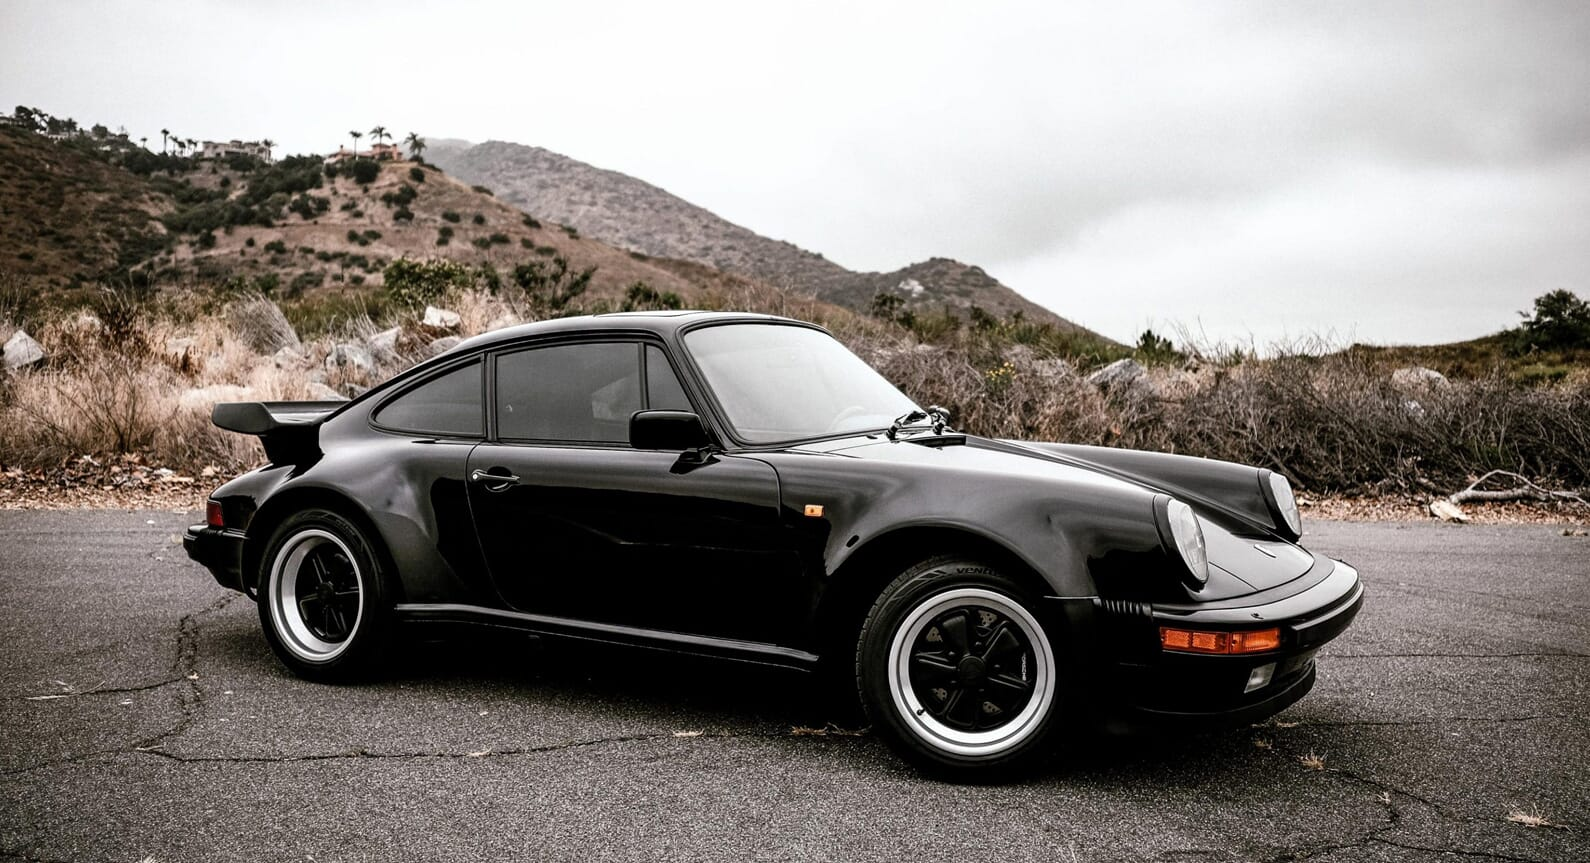 Classic Car Find Of The Week: The 1985 Porsche 930 Turbo